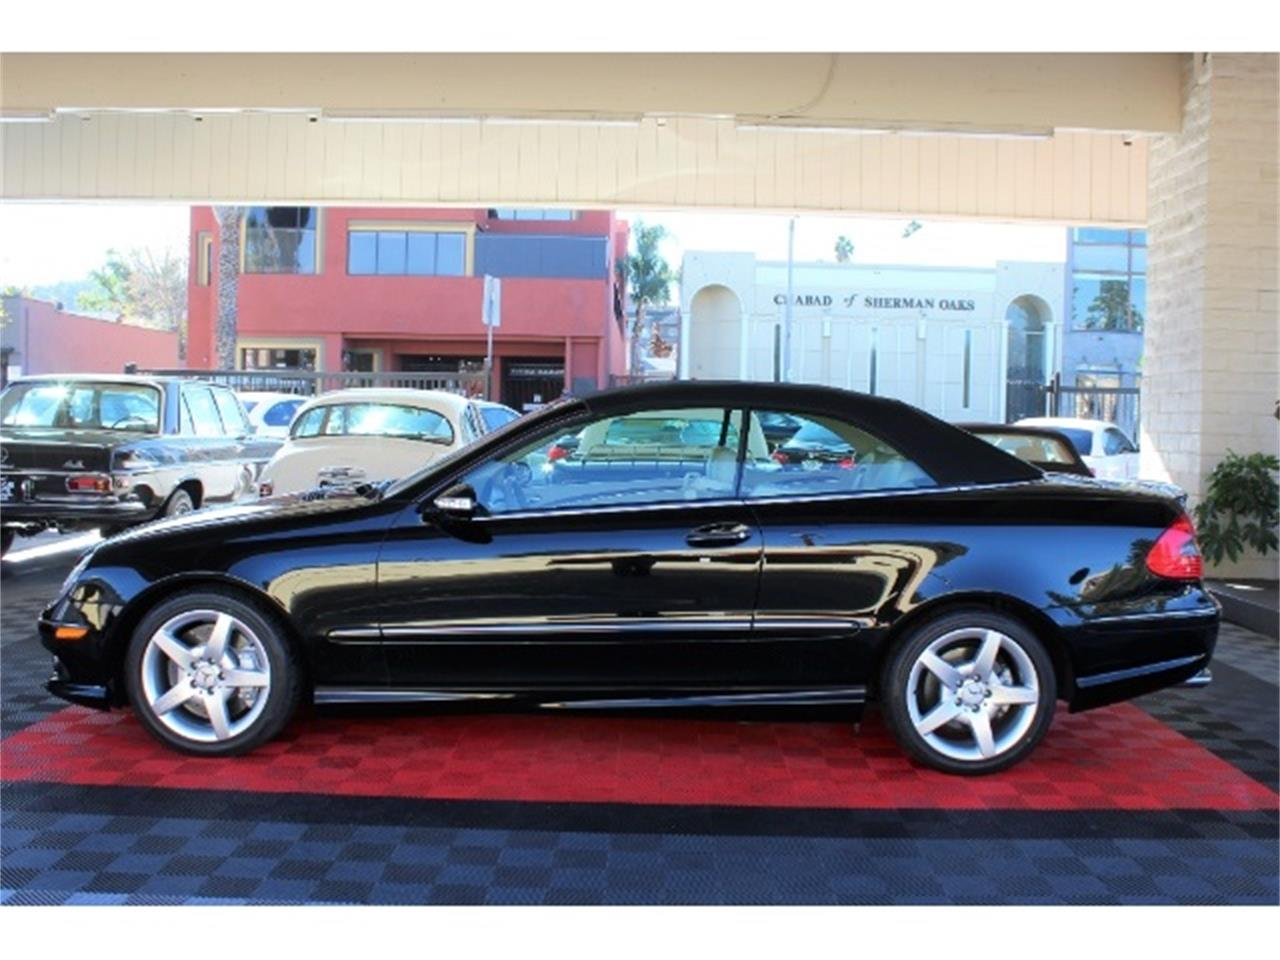 2007 Mercedes-Benz CLK-Class for sale in Sherman Oaks, CA – photo 4